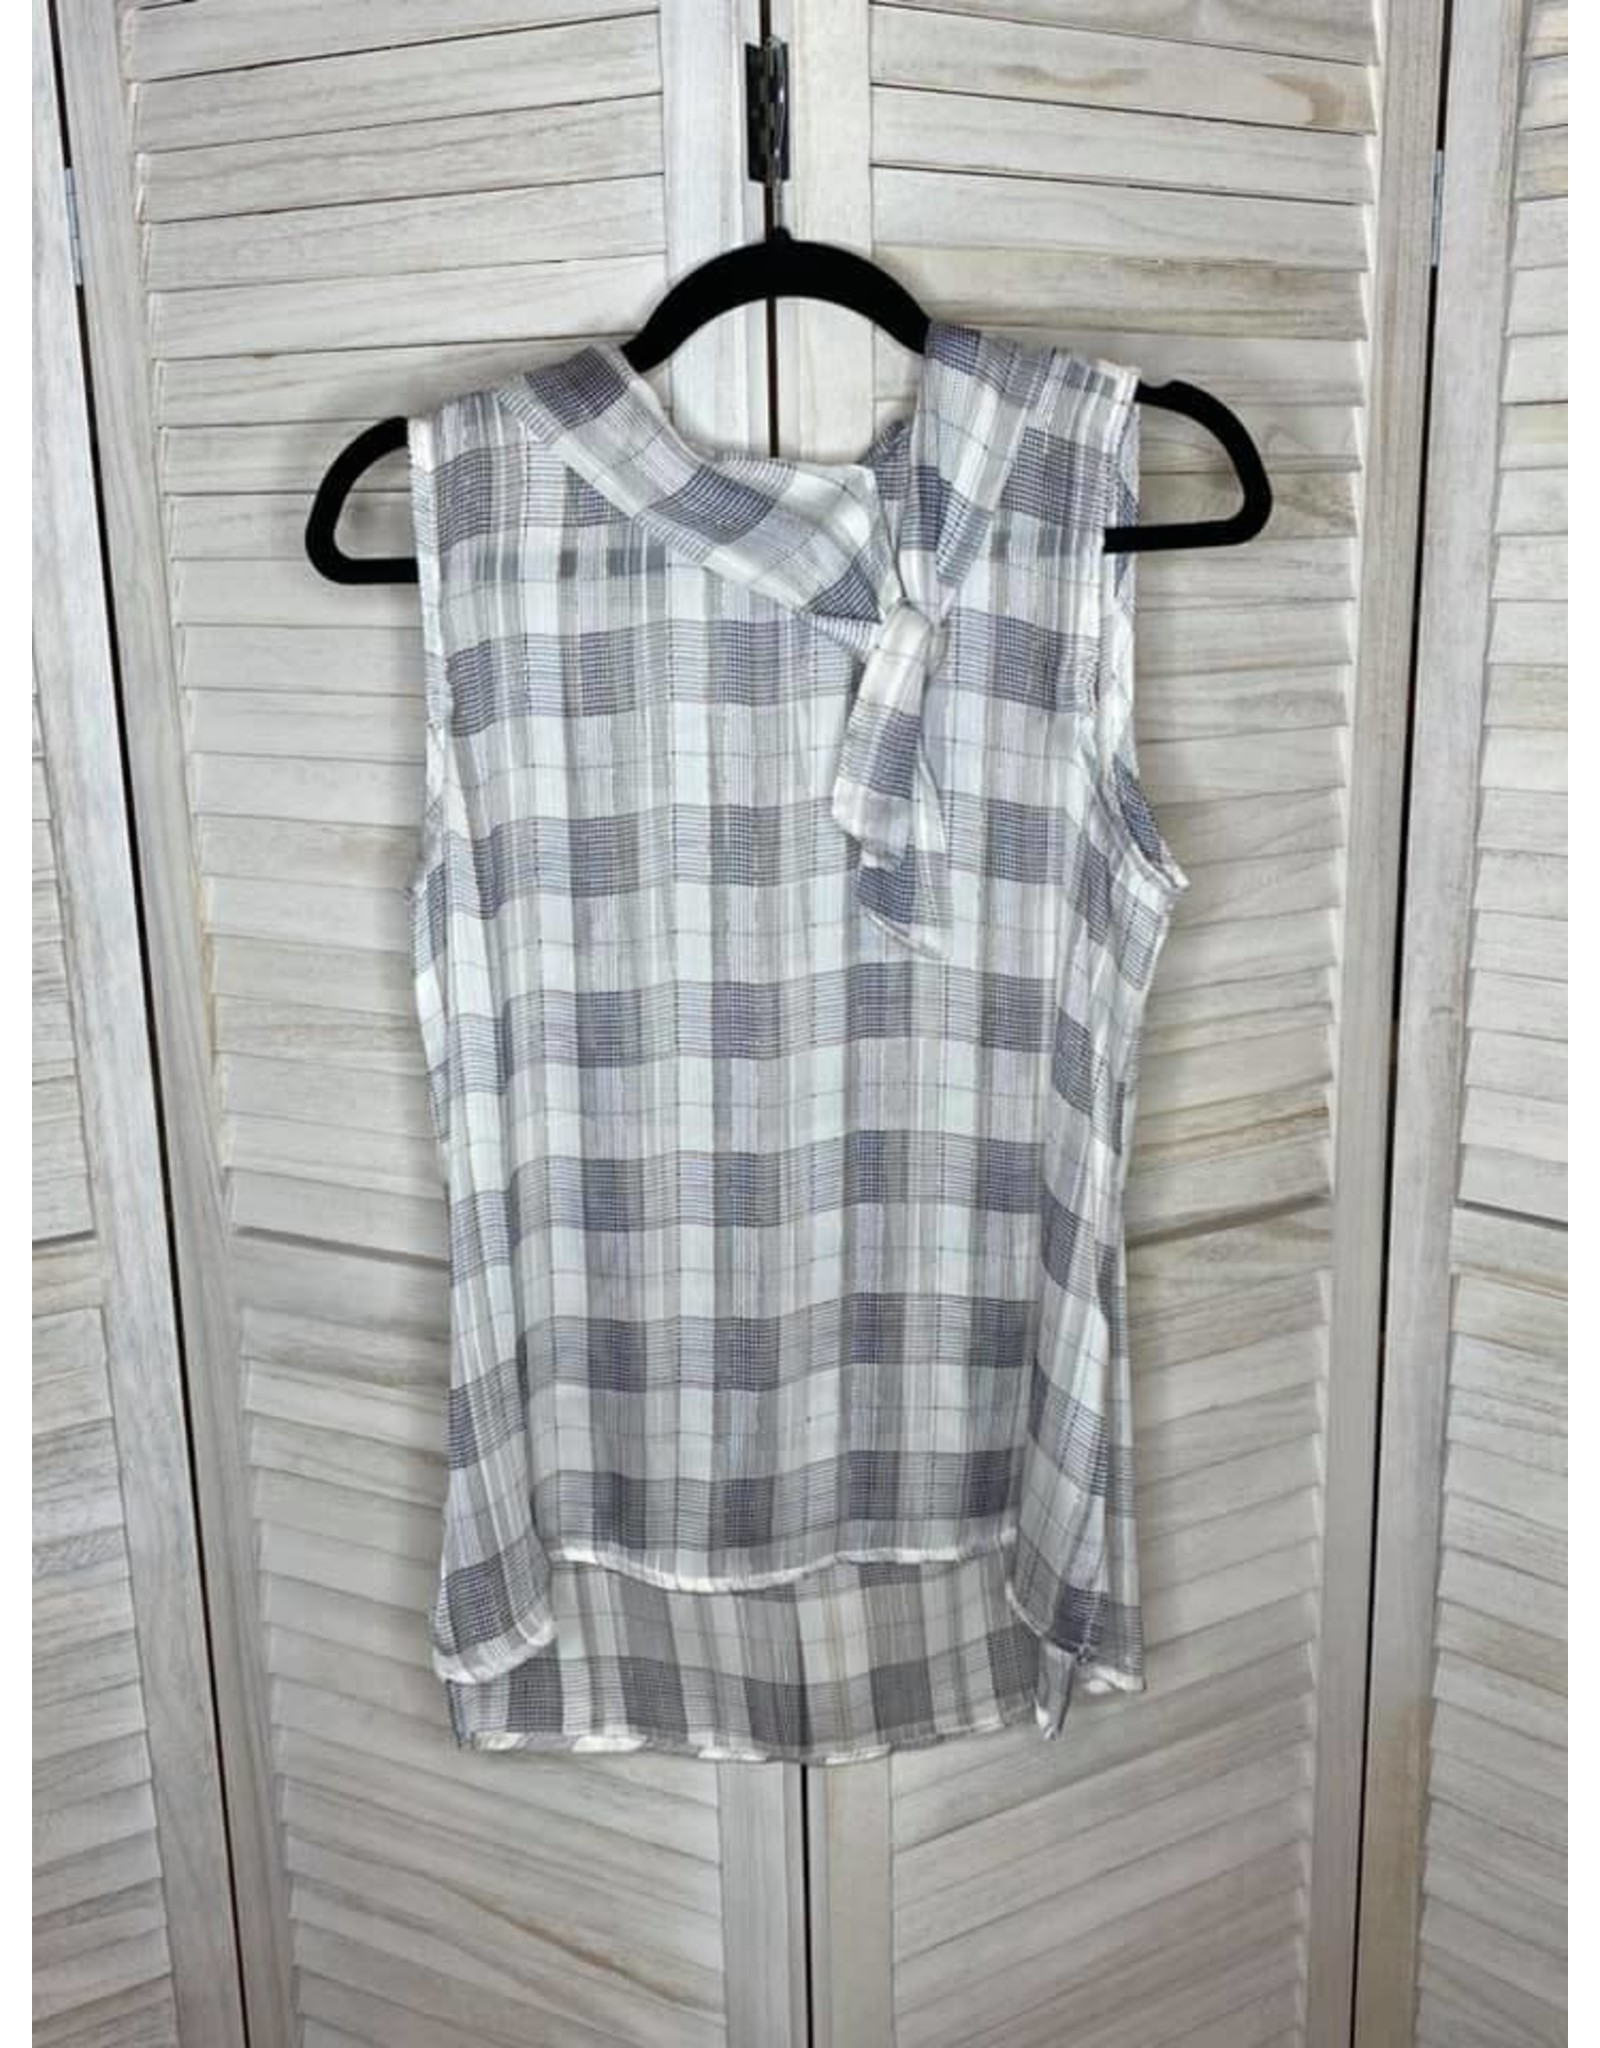 Westmoon Plaid Sleeveless Top with Gold Detail and Tie Cowlneck